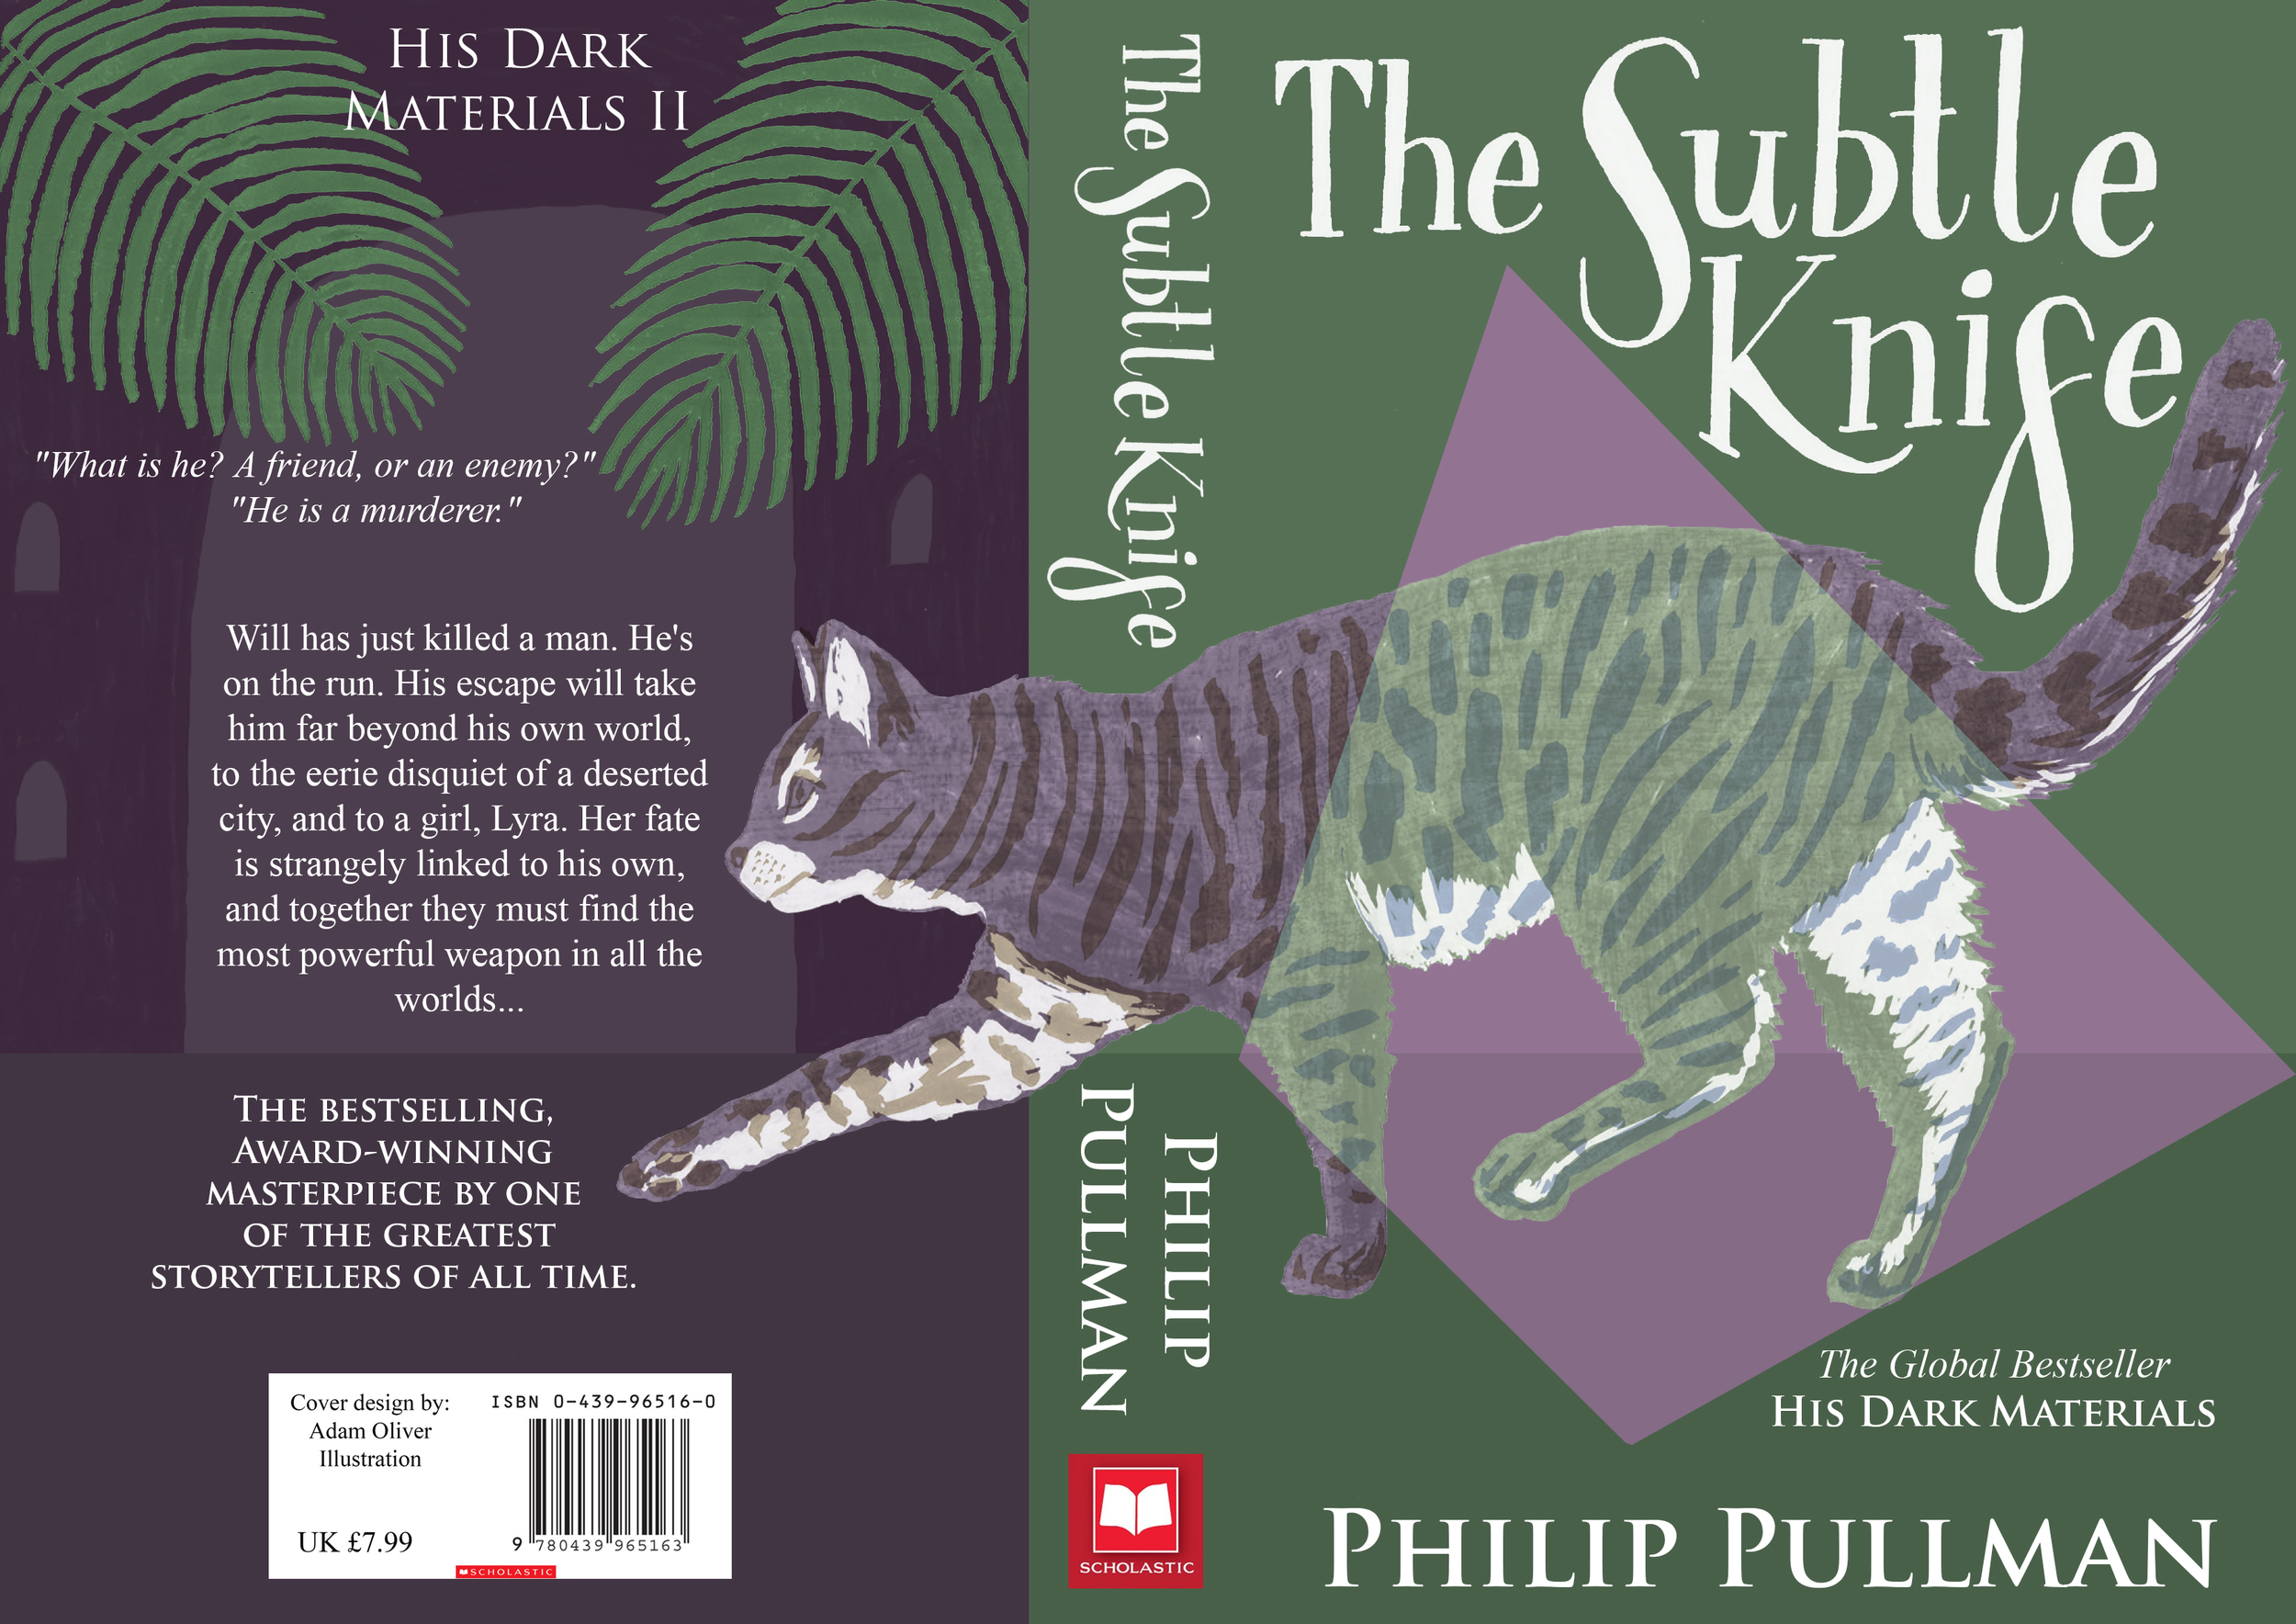 Book two - The Subtle Knife